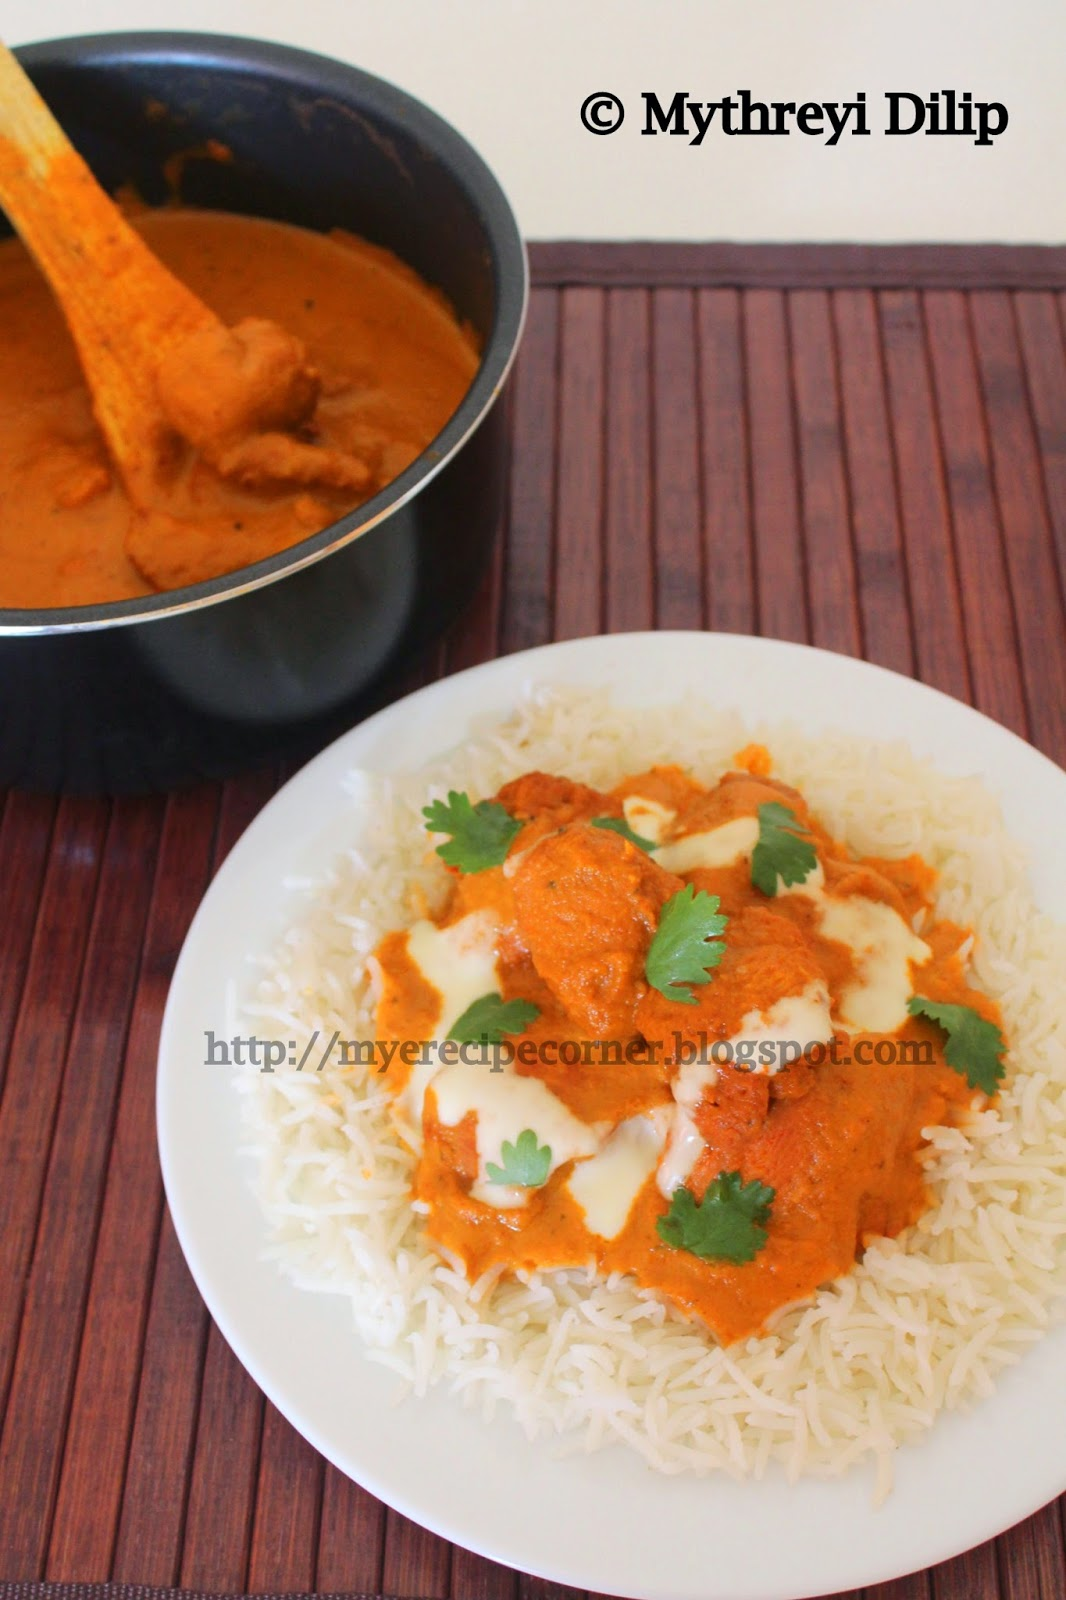 Myes kitchen restaurant style butter chicken recipe chicken restaurant style butter chicken recipe chicken tikka masala recipe with step by step pictures forumfinder Image collections